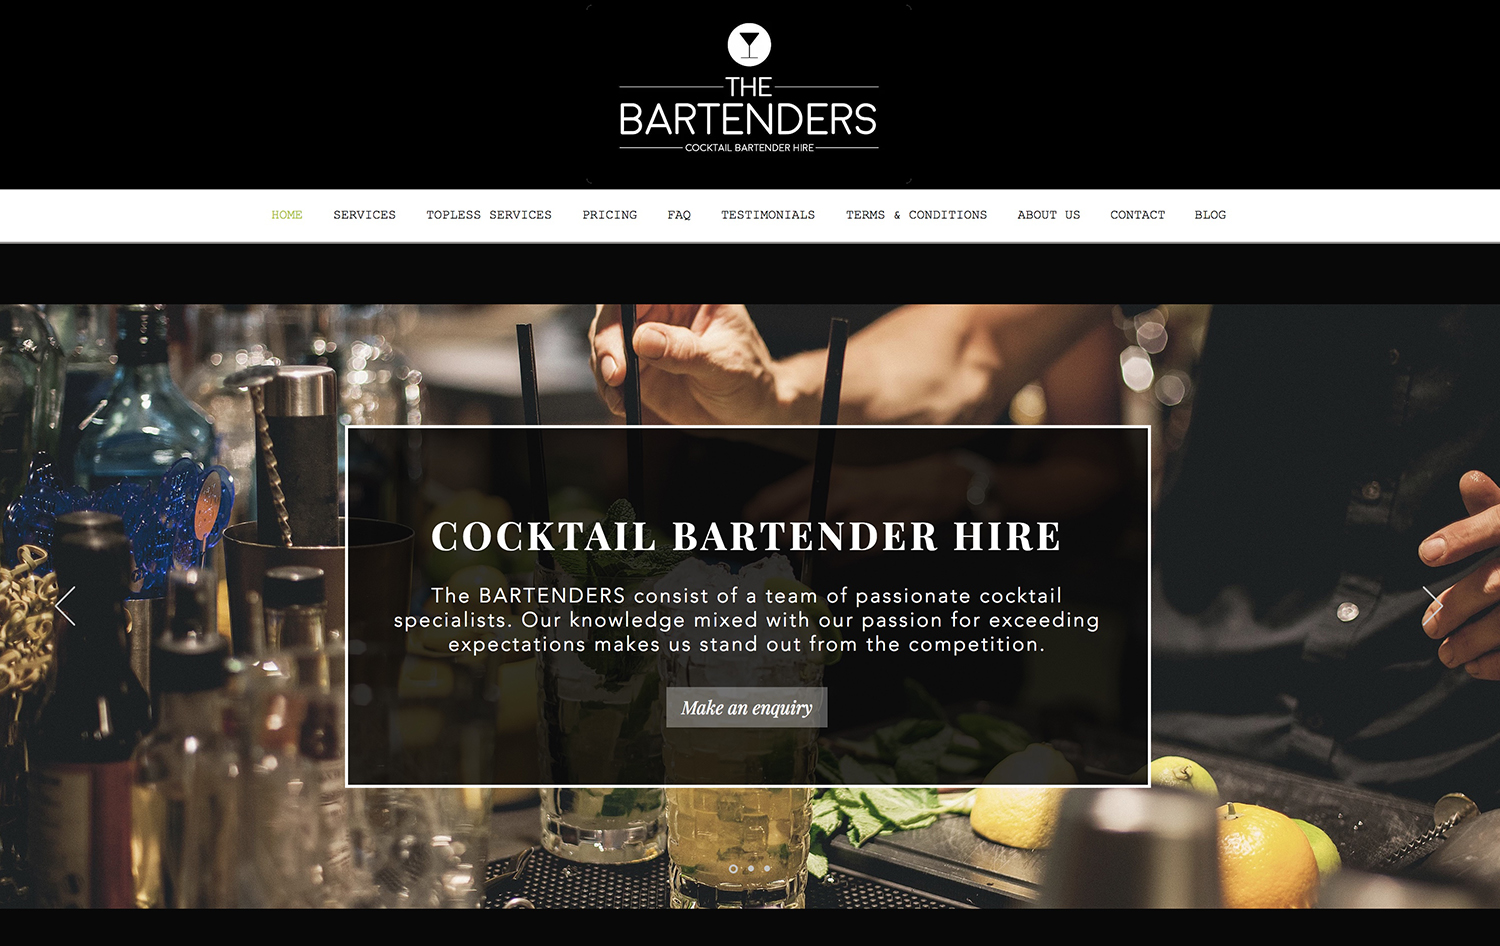 The Bartenders - PH: 0451 636 144 info@thebartenders.com.au